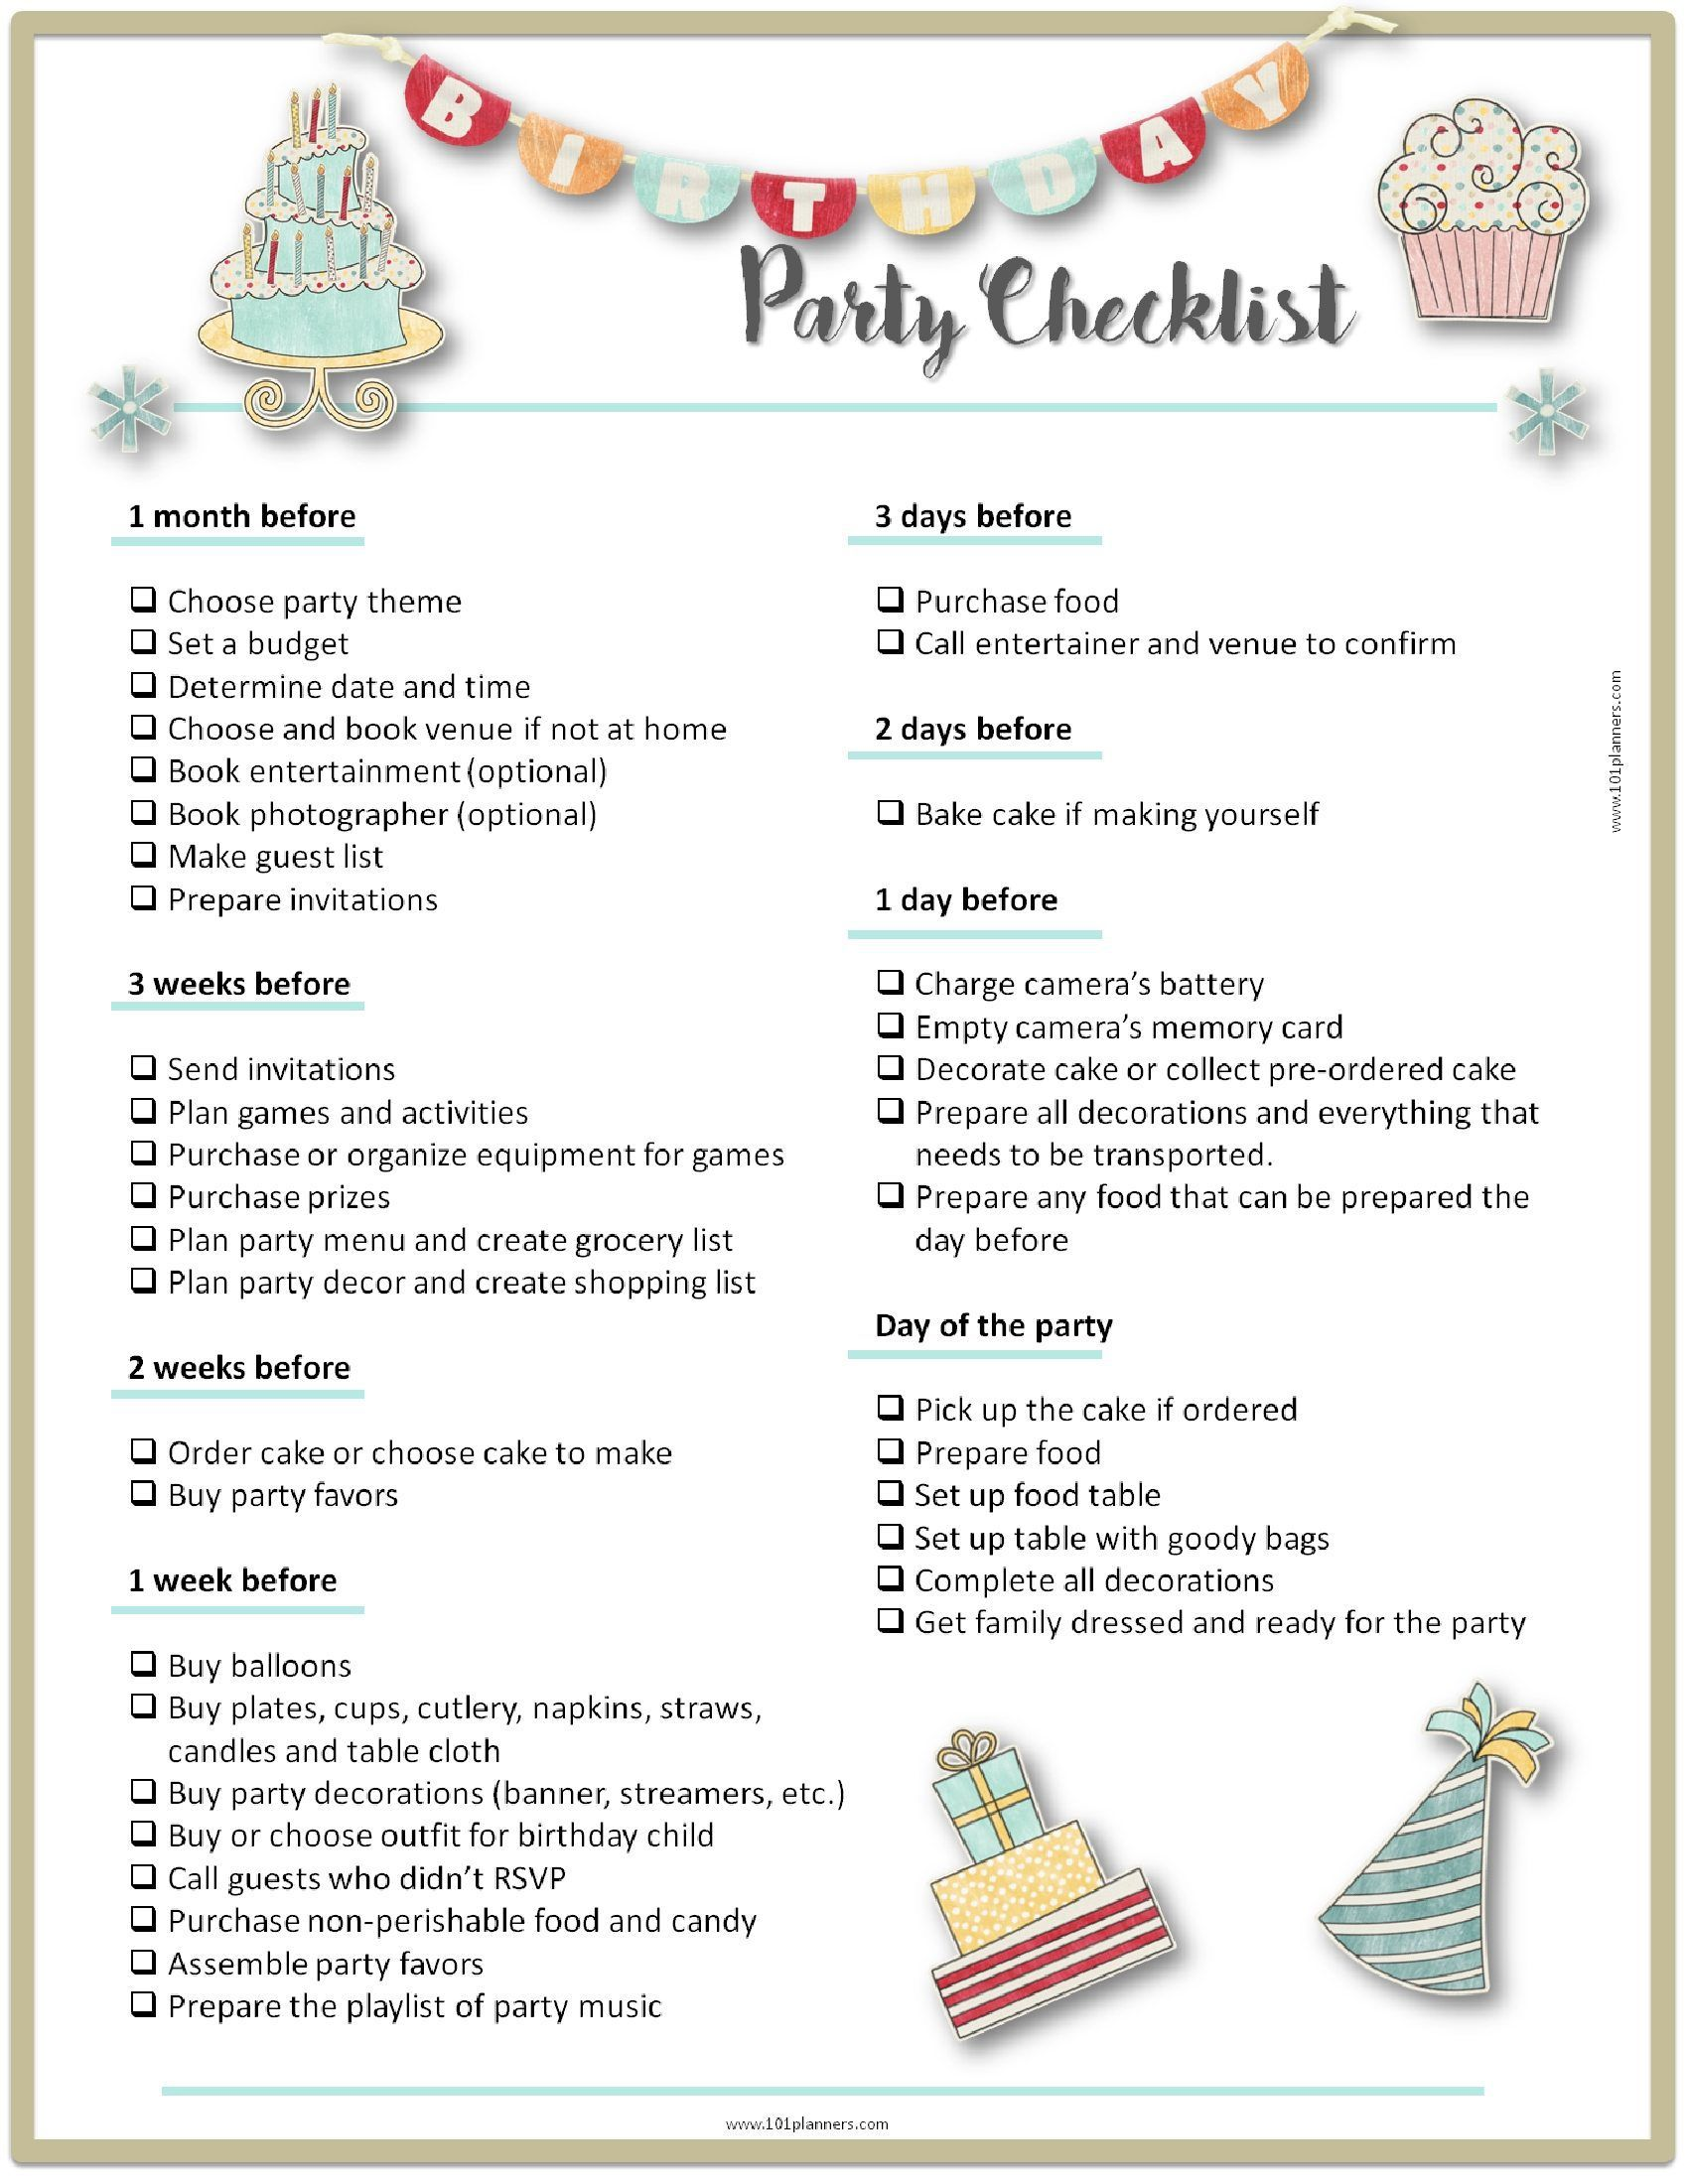 000 Exceptional Party Plan Checklist Template Example  Planning Free Graduation BirthdayFull